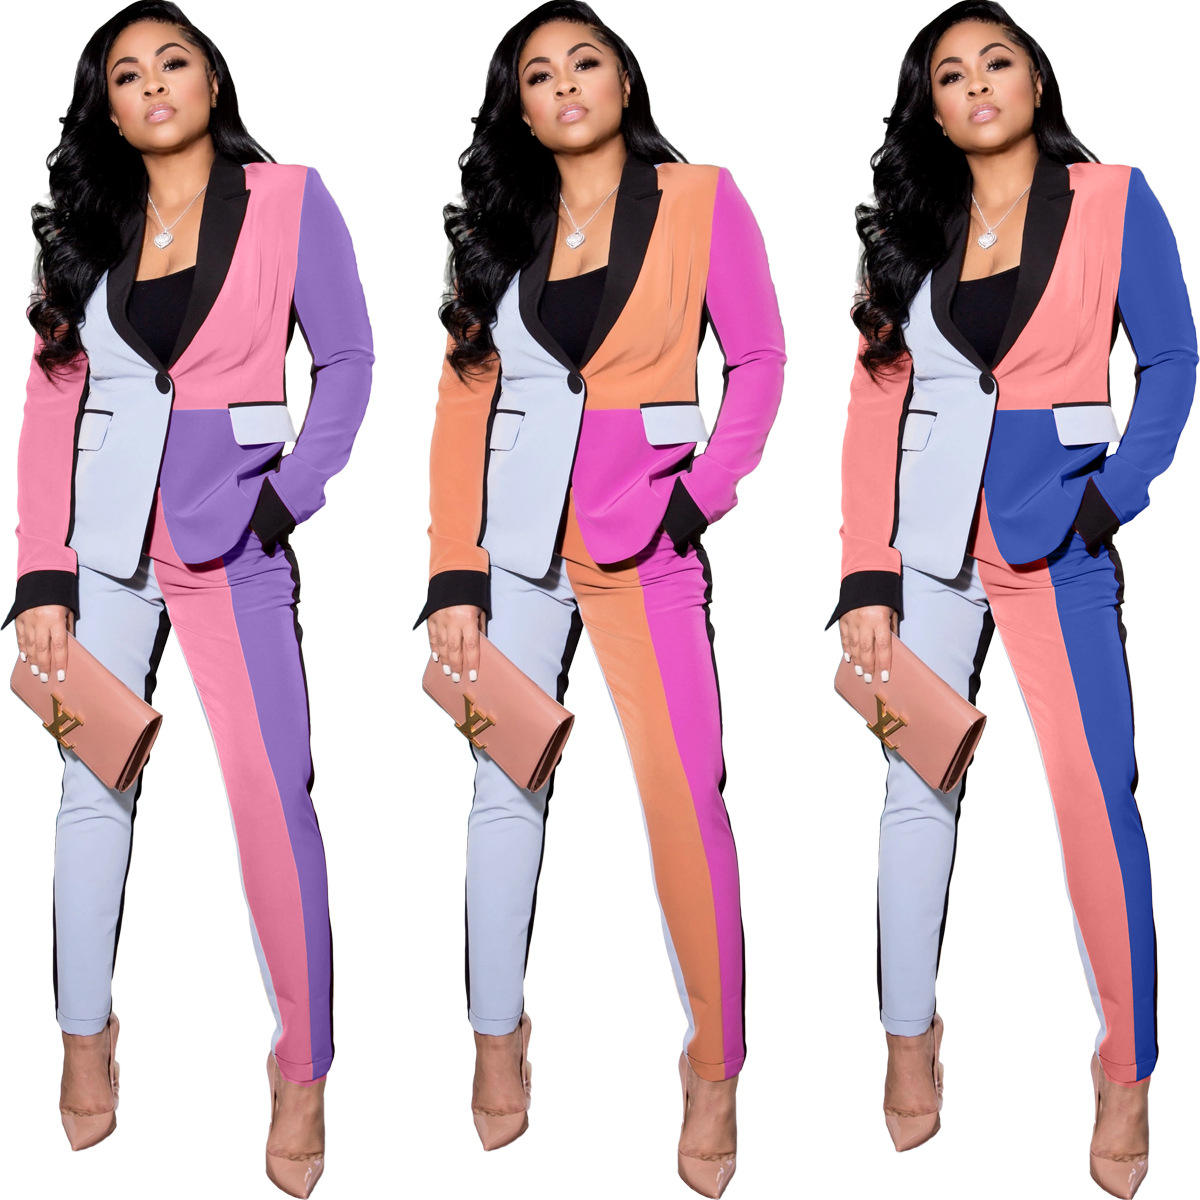 2021 New Women Colors Blocking Leisure Suit Sets Ladies Spring Leisure Fashion Straight Suit Low Price Women Candy Colors Blazer